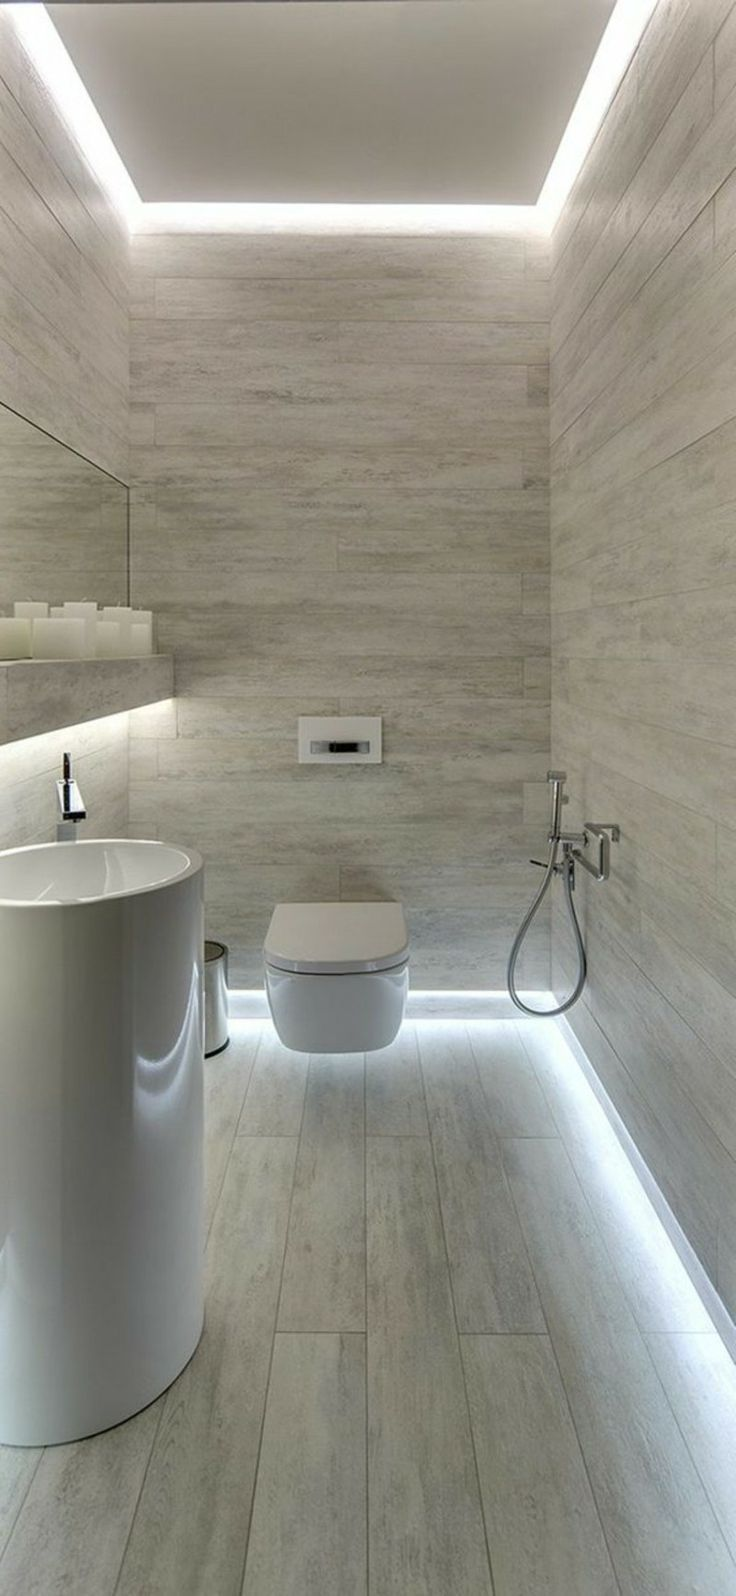 Moderne Badbeleuchtung Indirekte Beleuchtung Led Bad Bathroom Ceiling Light Design